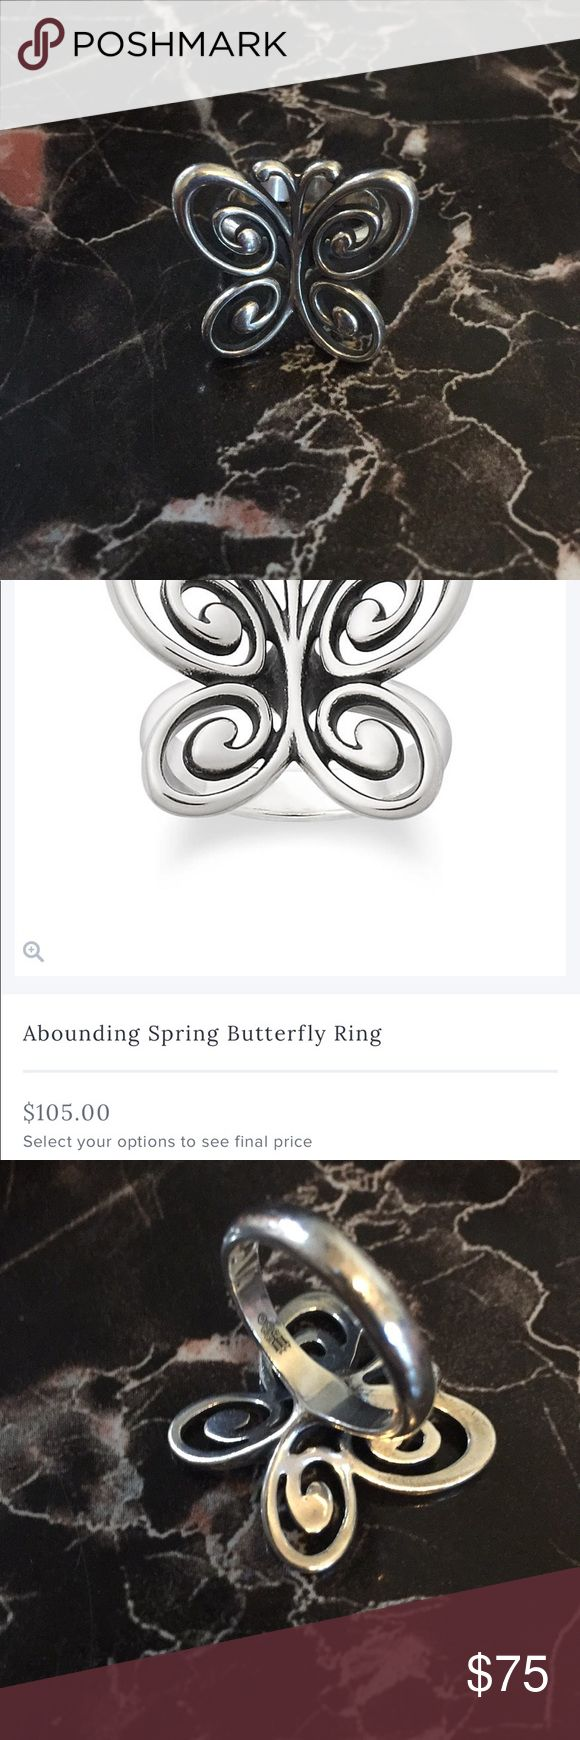 James Avery Abounding Spring Butterfly Ring Amazing condition ring by James Avery. Size 6. Super lovely piece but not reasonable for my type of work where I wear latex gloves everyday. Will polish before shipping out! James Avery Jewelry Rings